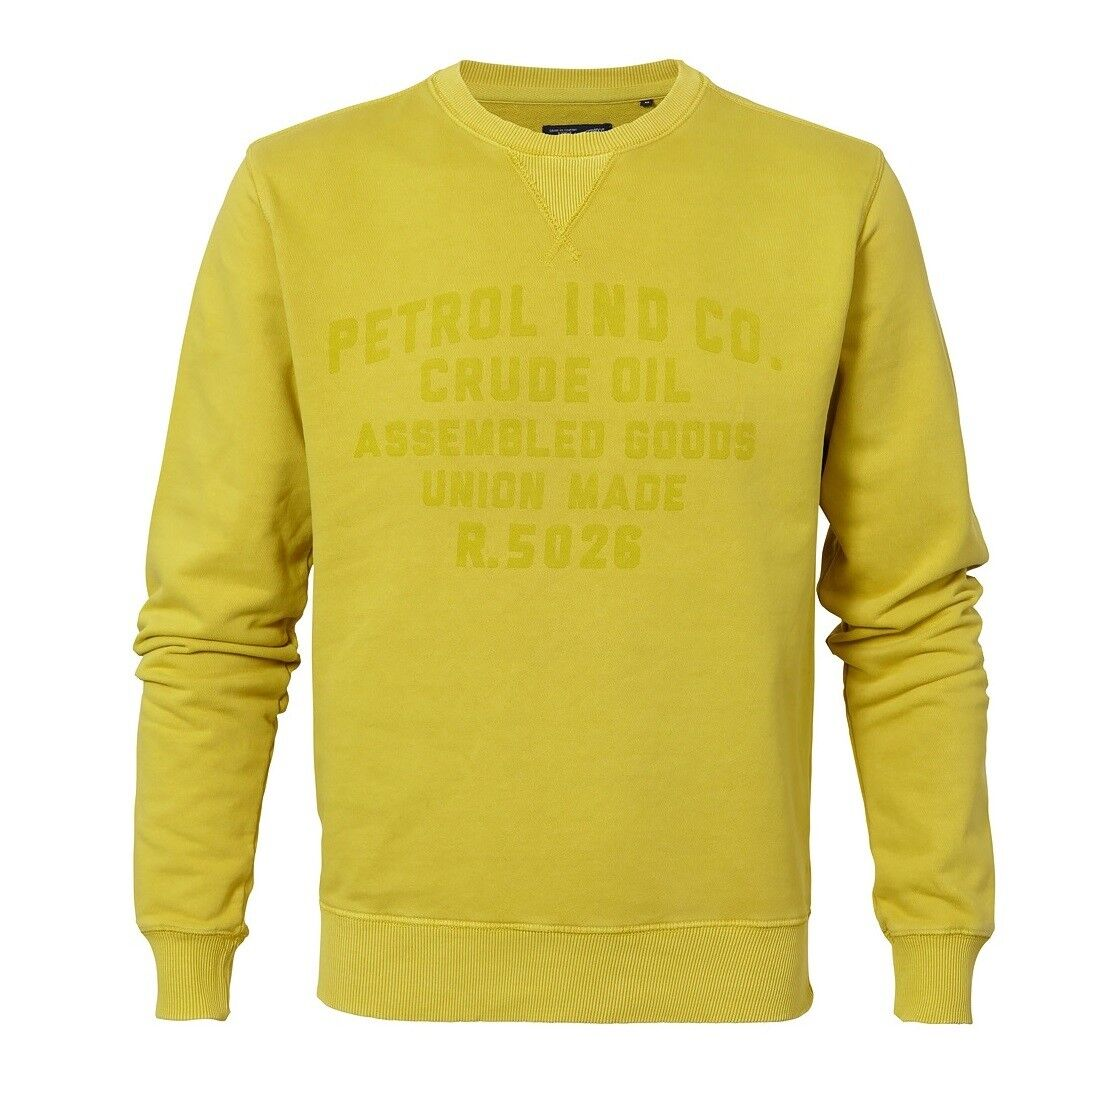 Petrol Industries Felpa Sweater Vinegar m-ss18-swr352